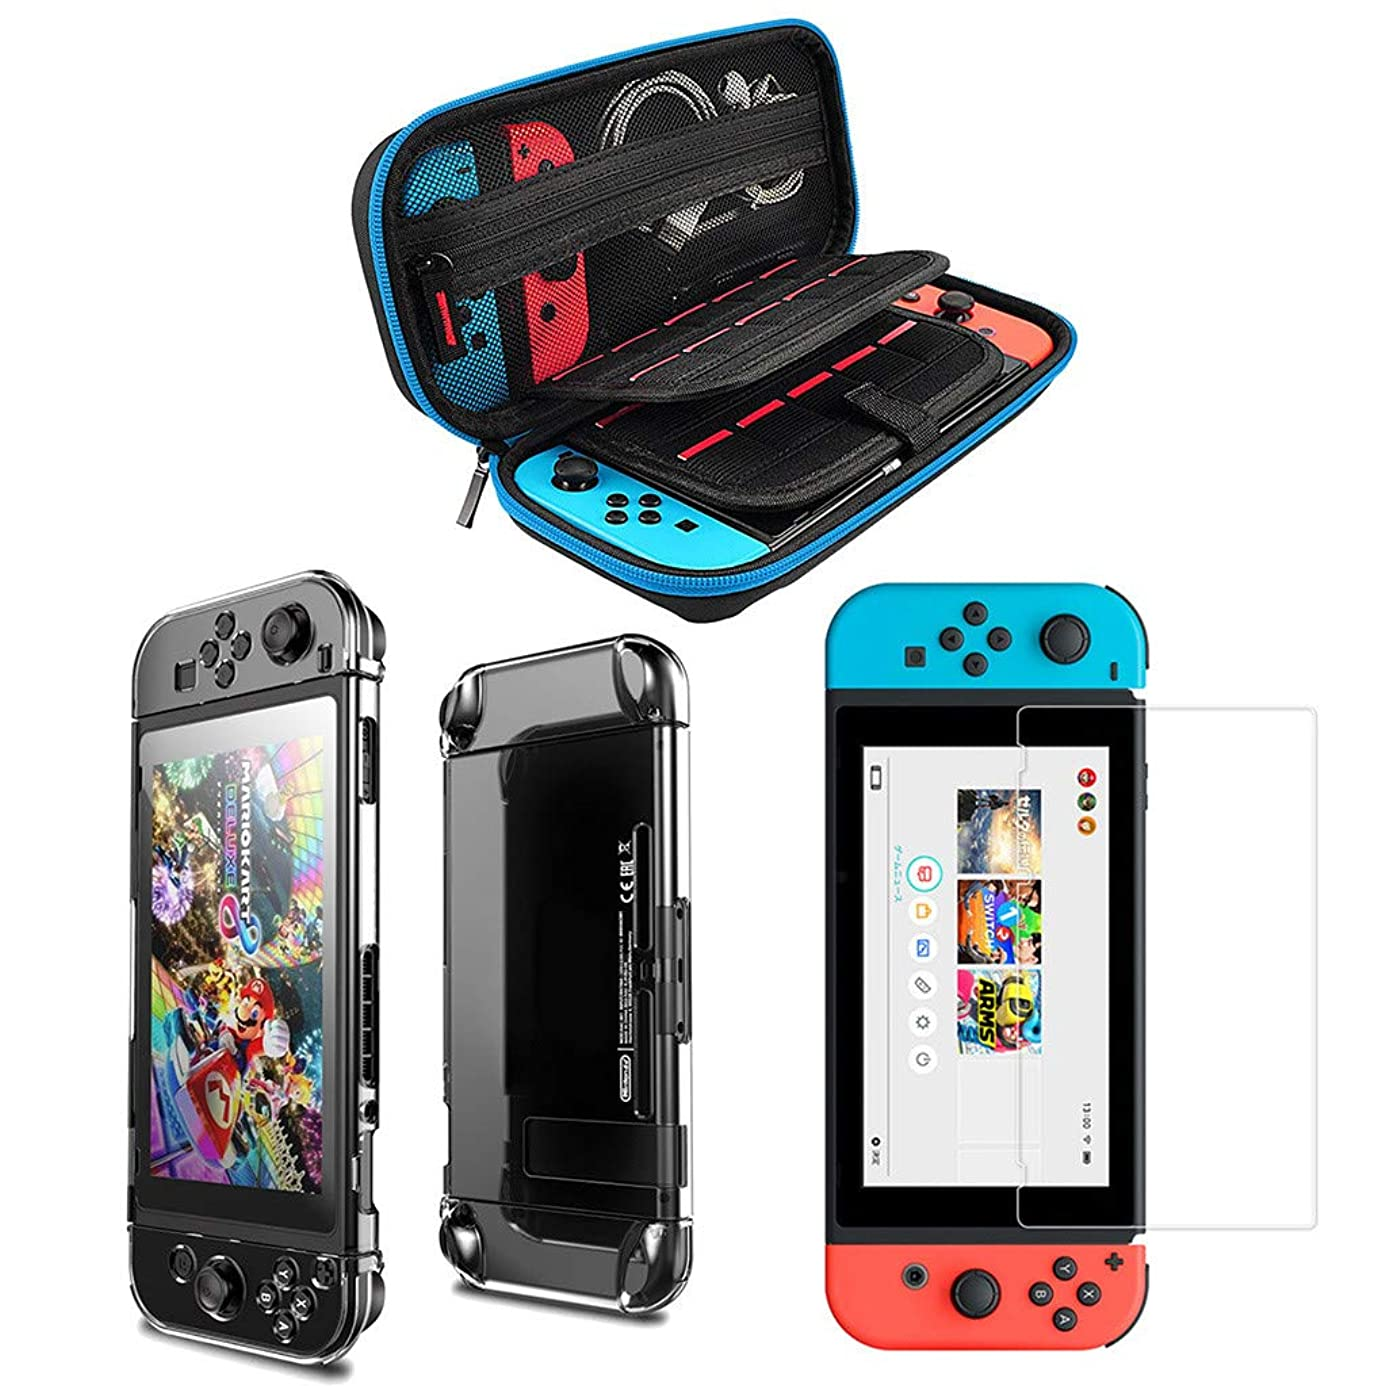 Lljin Carrying Case Carbon Fiber Shell Portable Pouch Travel Bag for Nintendo Switch